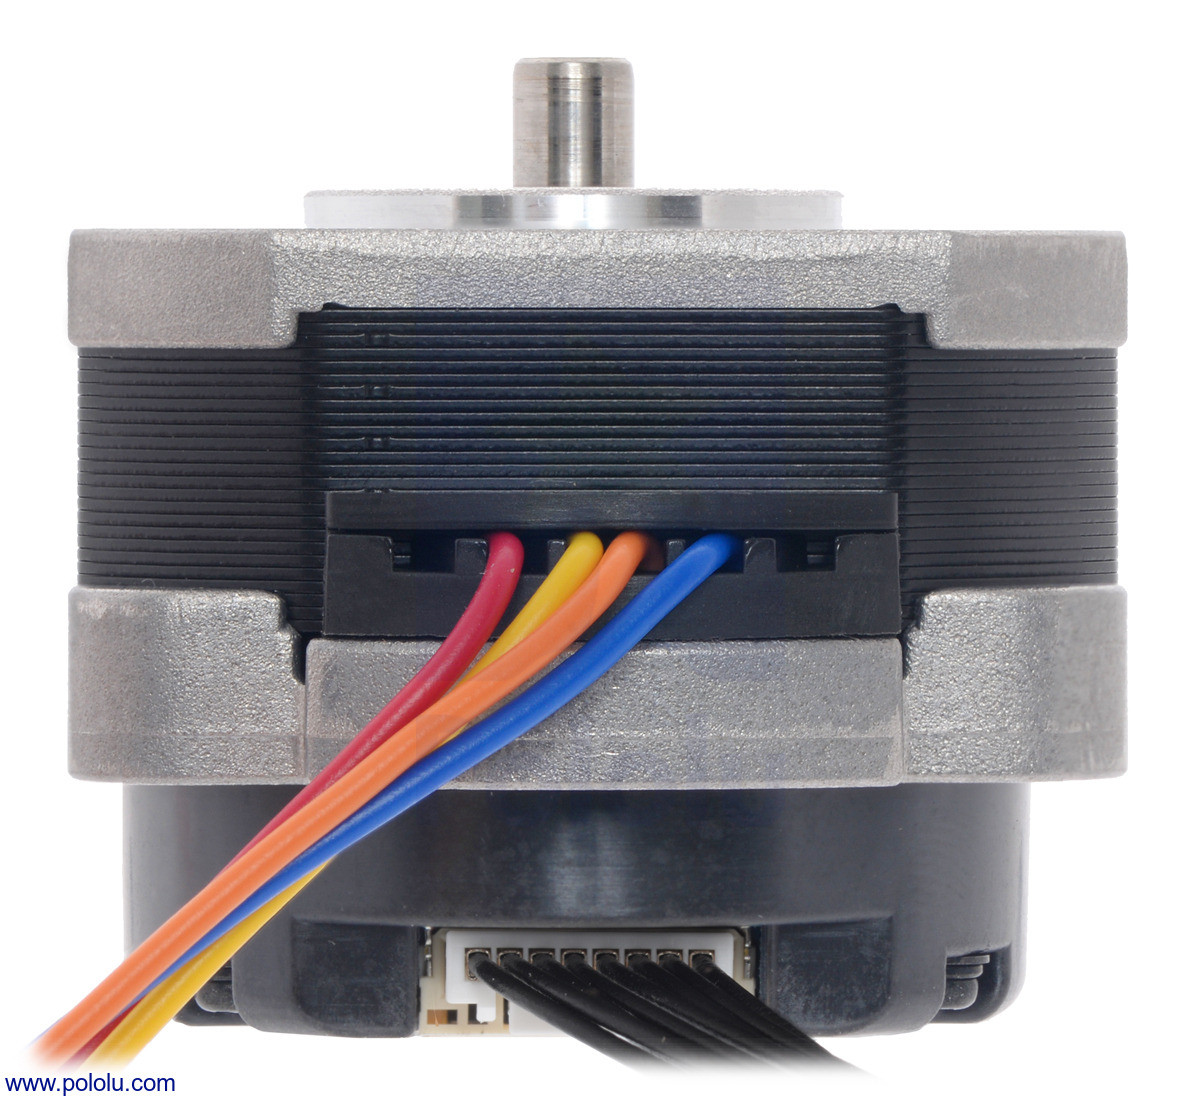 Pololu Sanyo Pancake Stepper Motor With Encoder Bipolar 200 Wiring Diagram 6 Pin Plug Bottom View Of The 42315mm